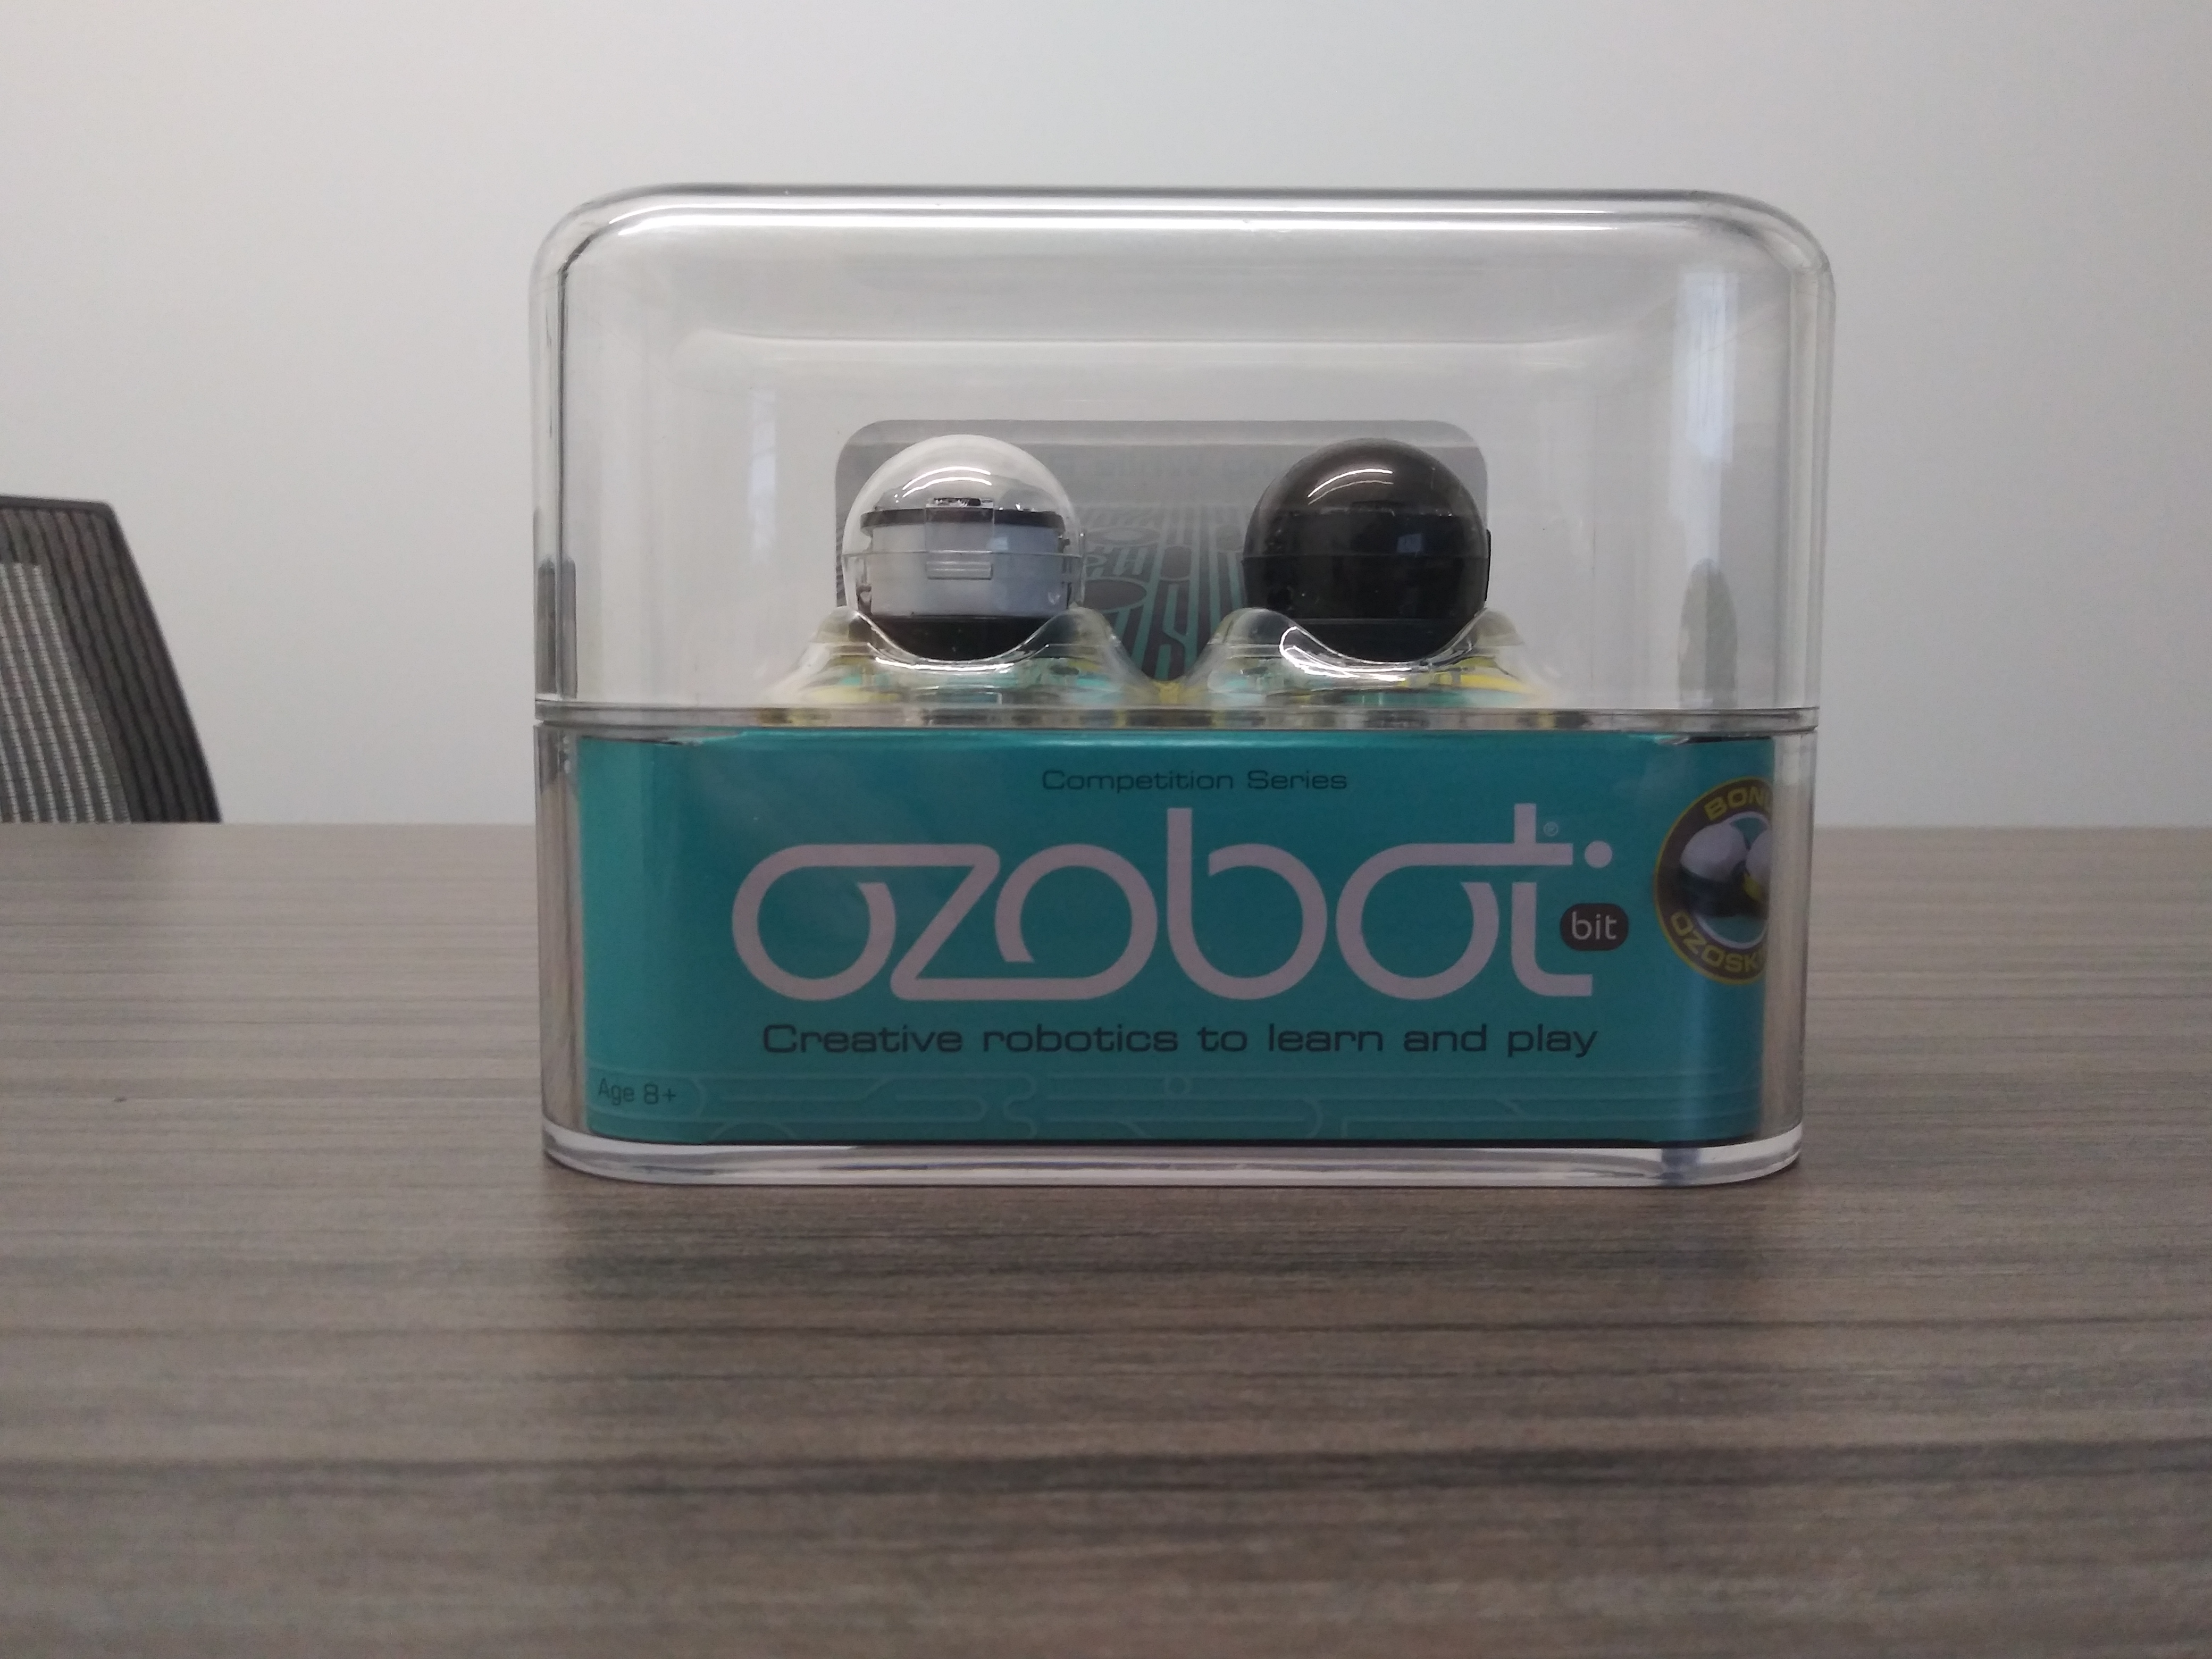 Picture of two Ozobot Bits in packaging - one clear, one black